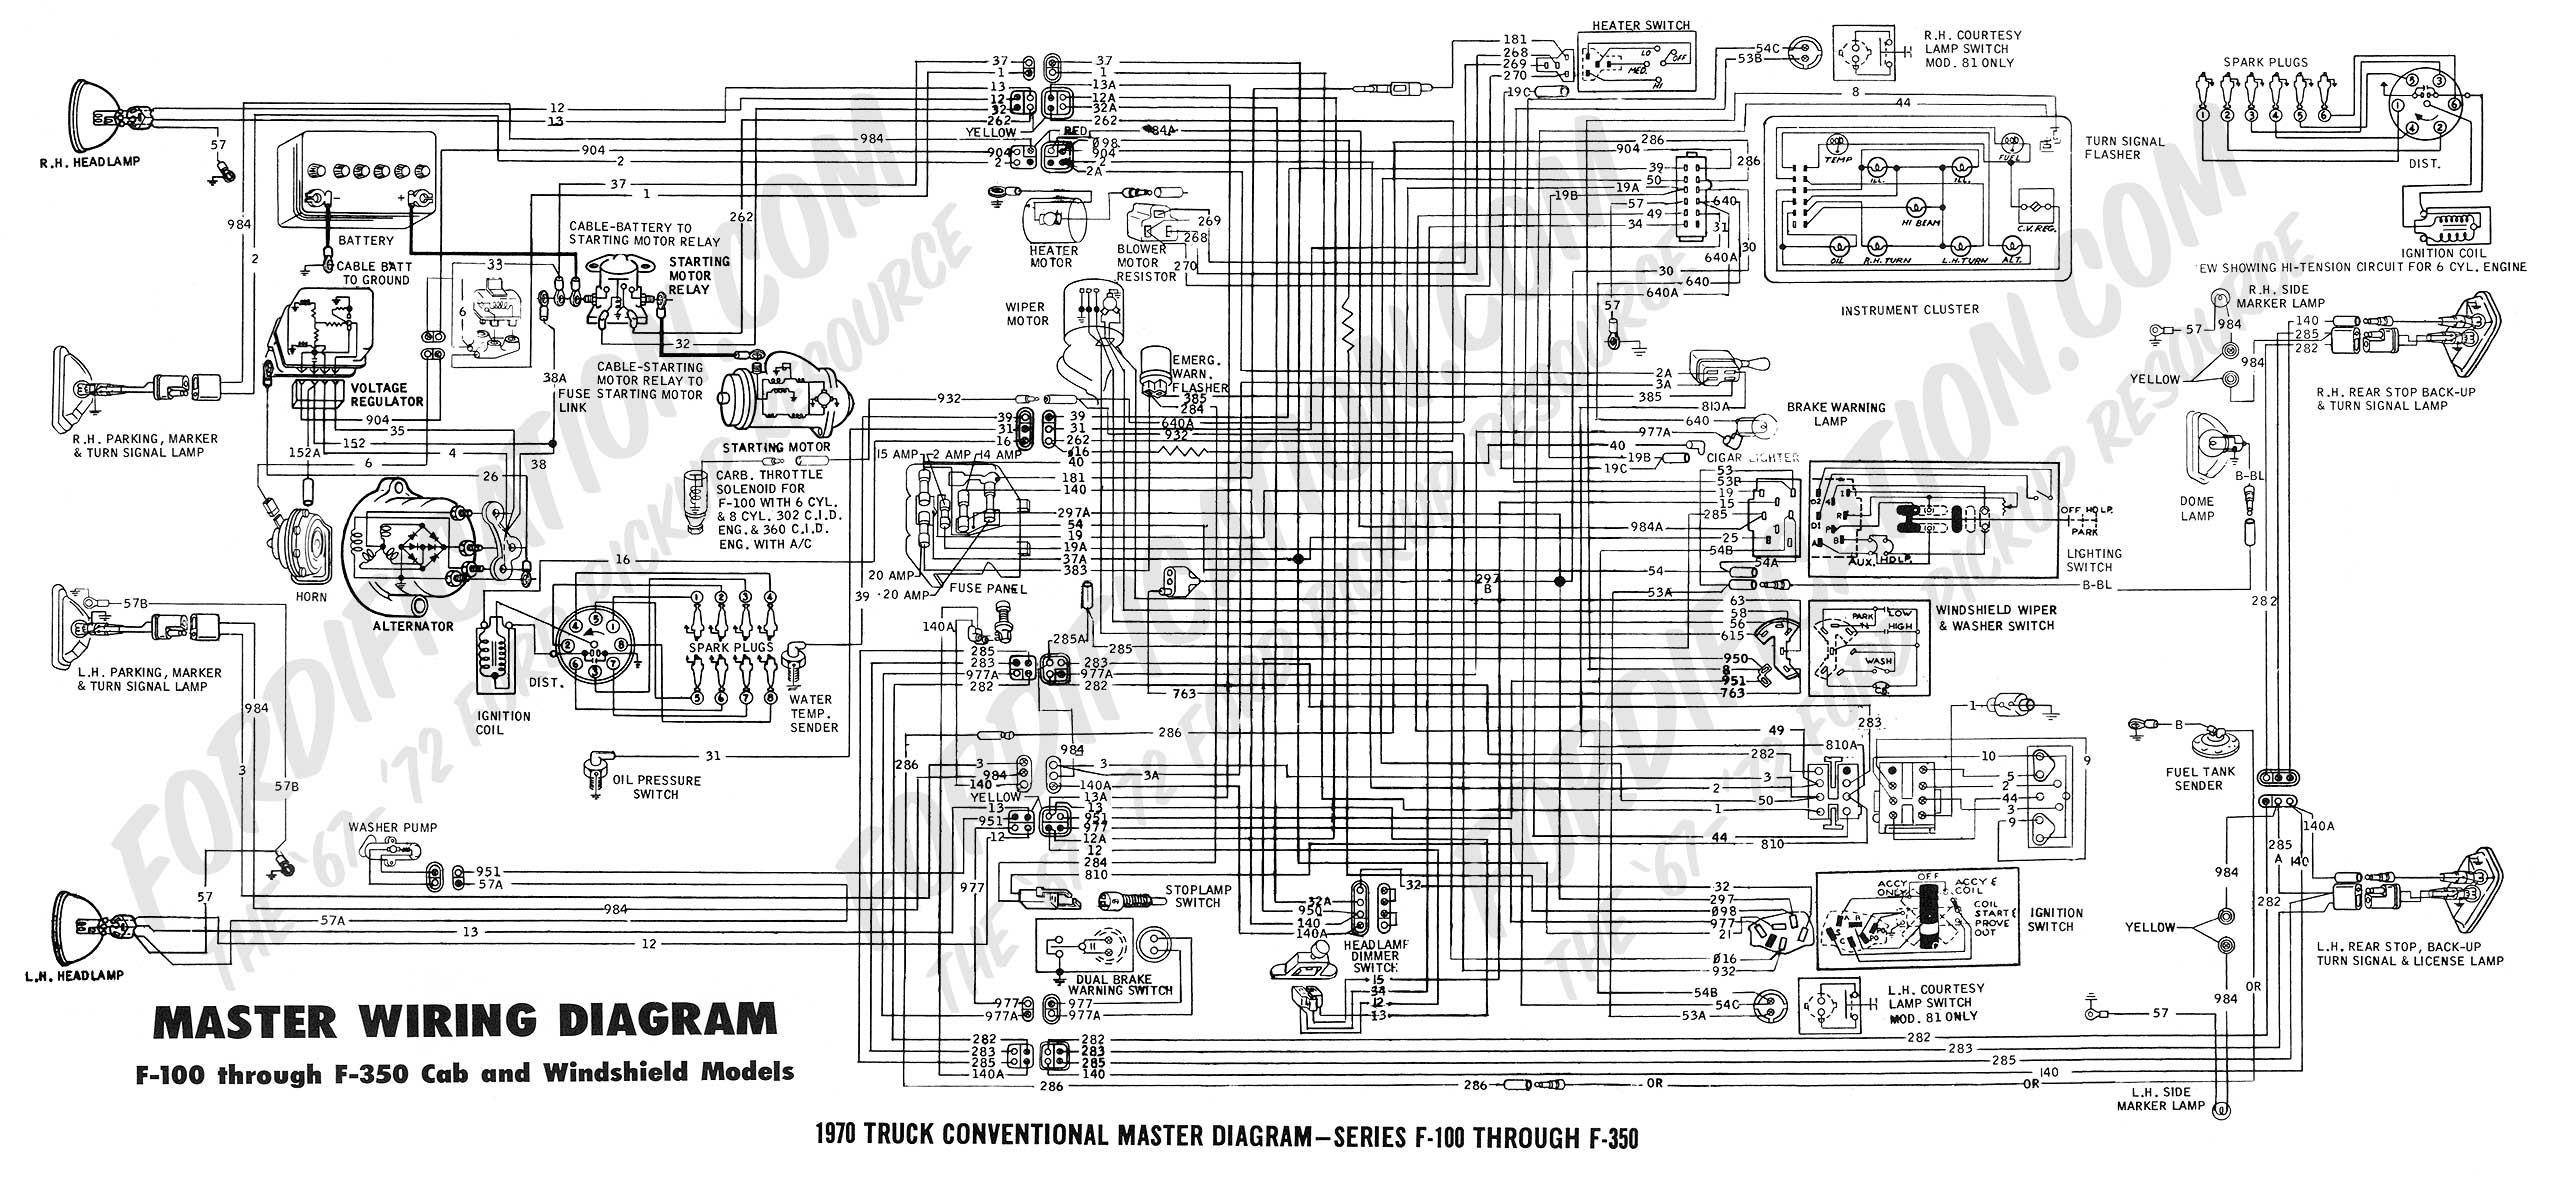 1989 f350 wiring diagram 1989 wiring diagrams wiring diagram 70 master